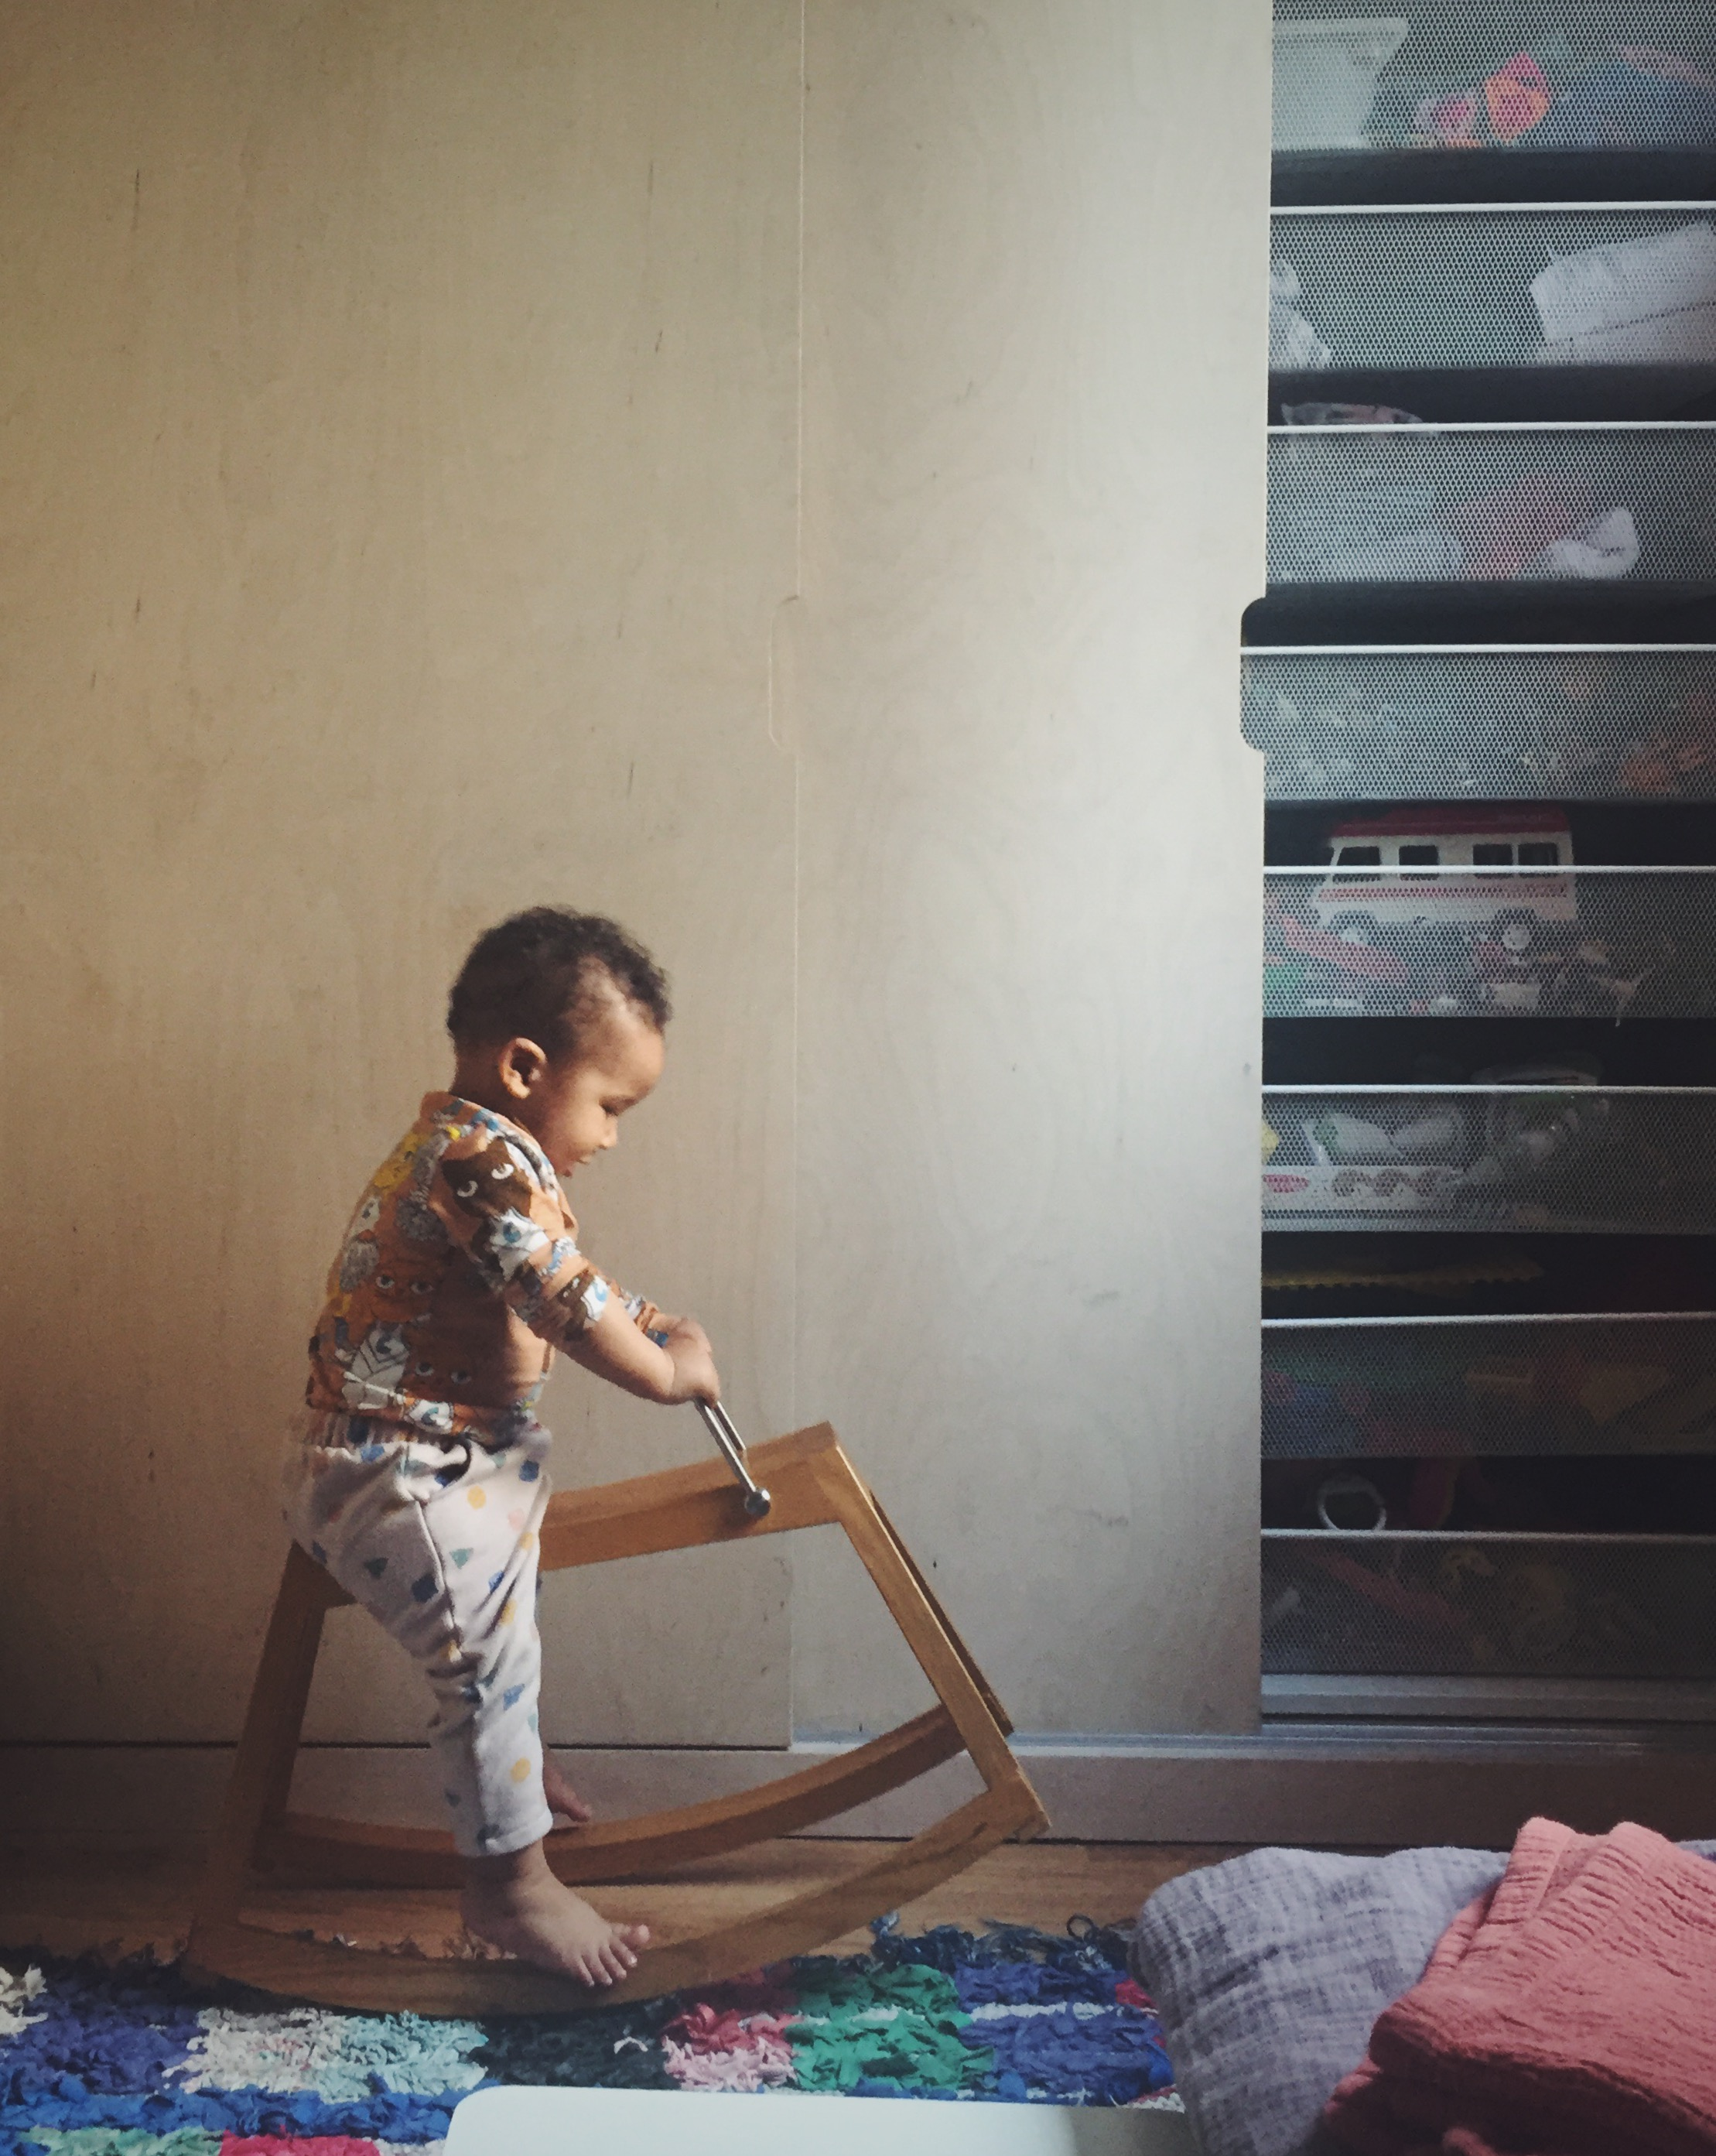 Clever built-in storage and a cute baby. Jessica Traylen of @small.solutions__